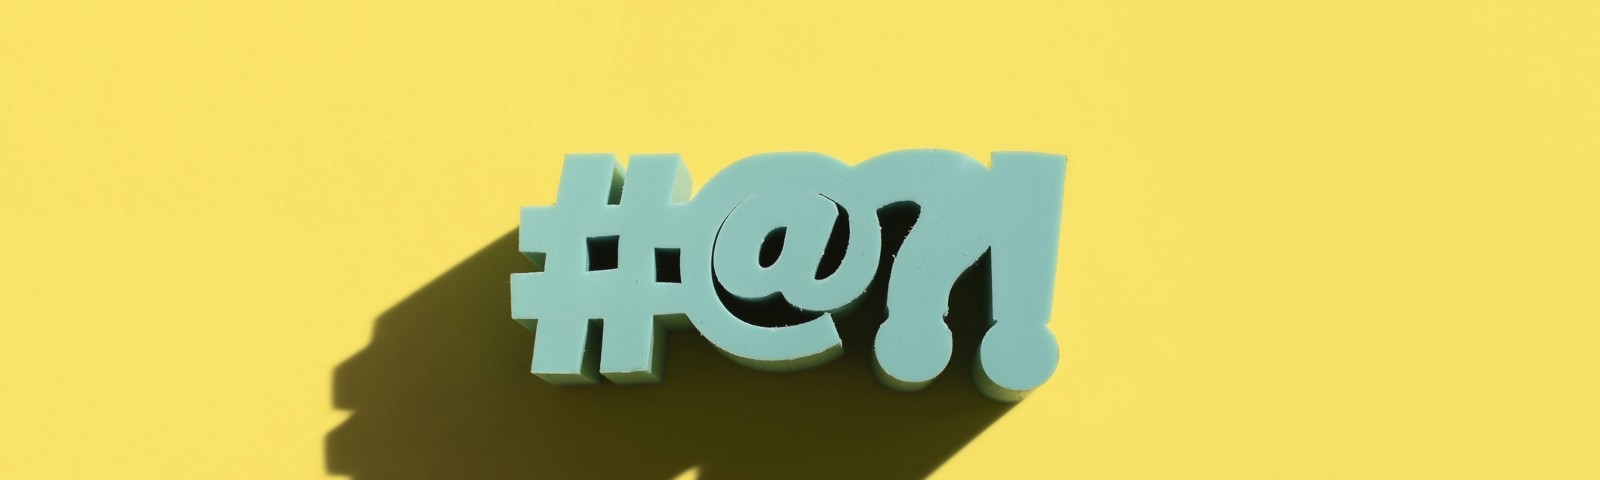 #@?! in block letters against a yellow background.